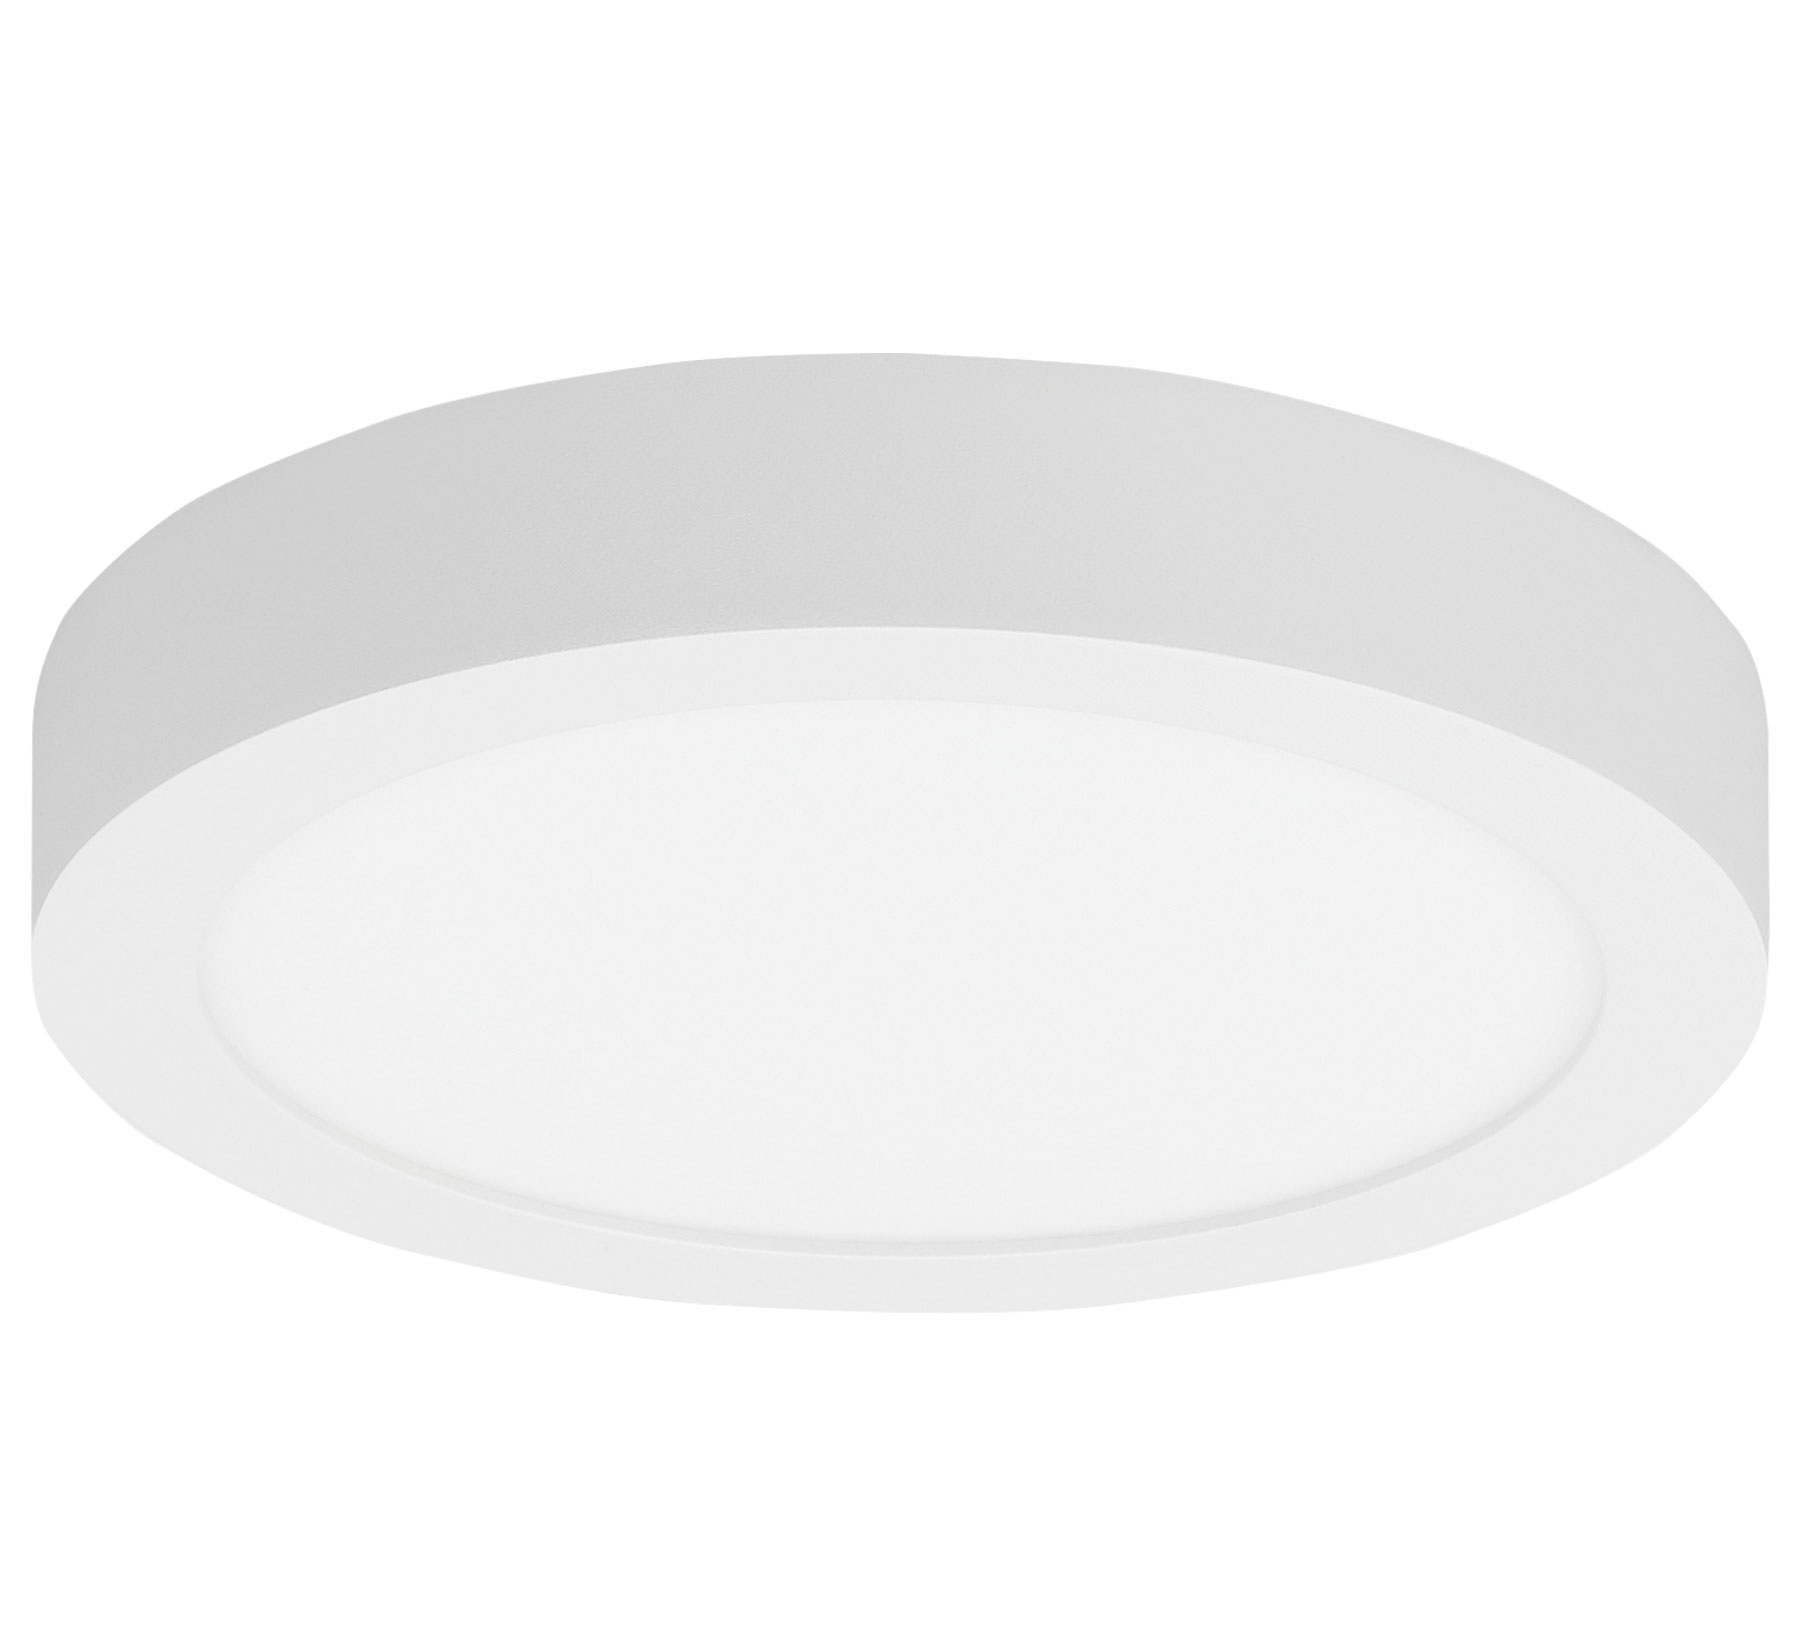 Tenur Round Ceiling Light Fixture By LBL Lighting